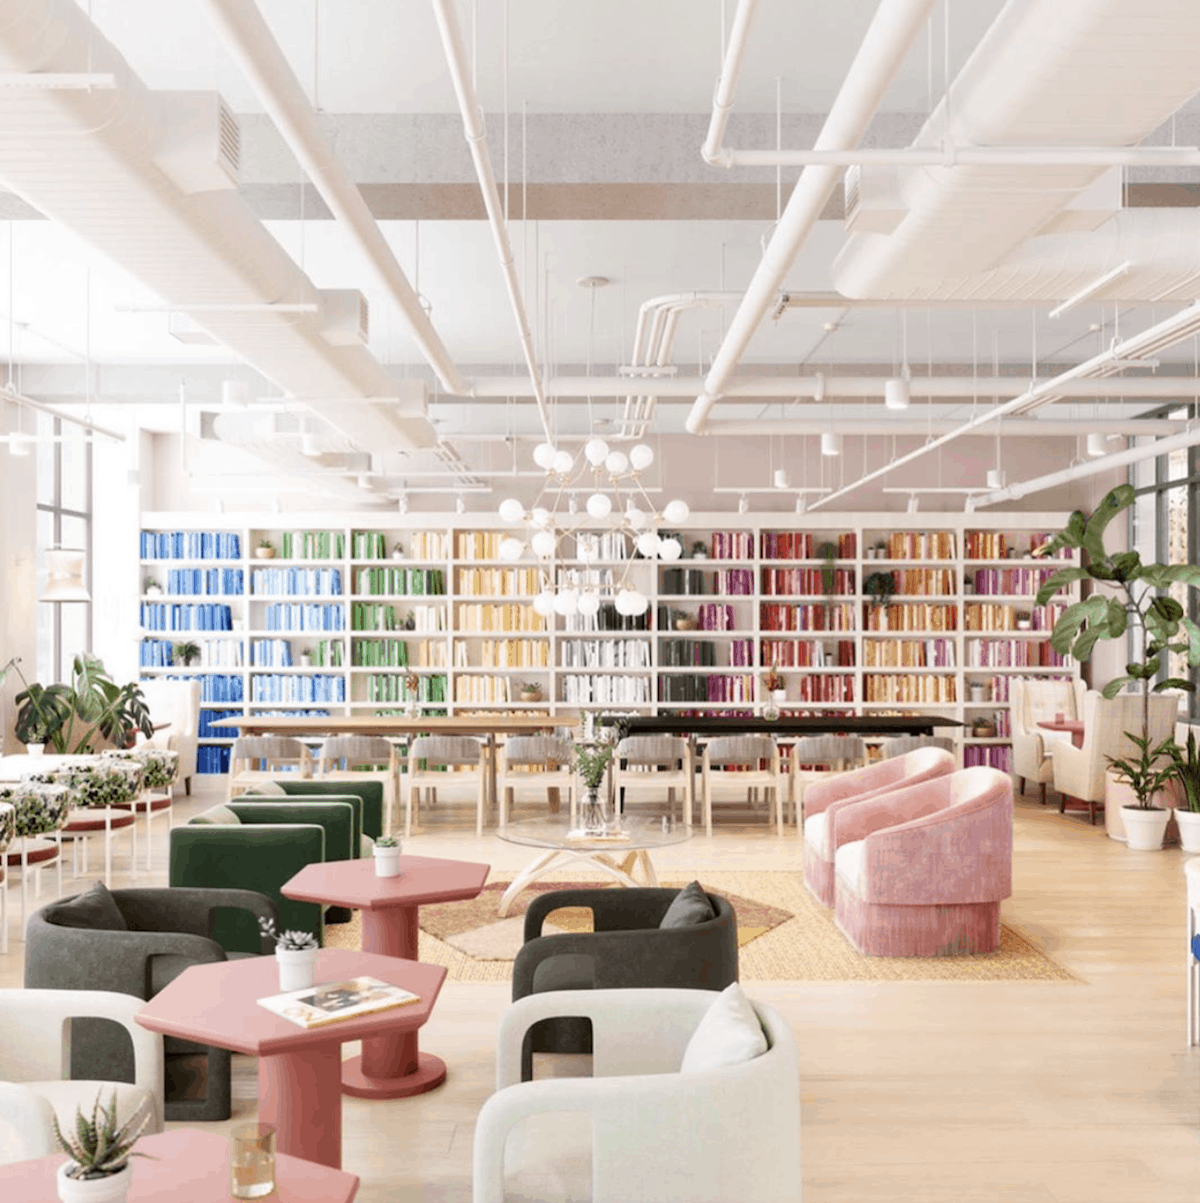 The Wing is a co-worker space designed for women in London